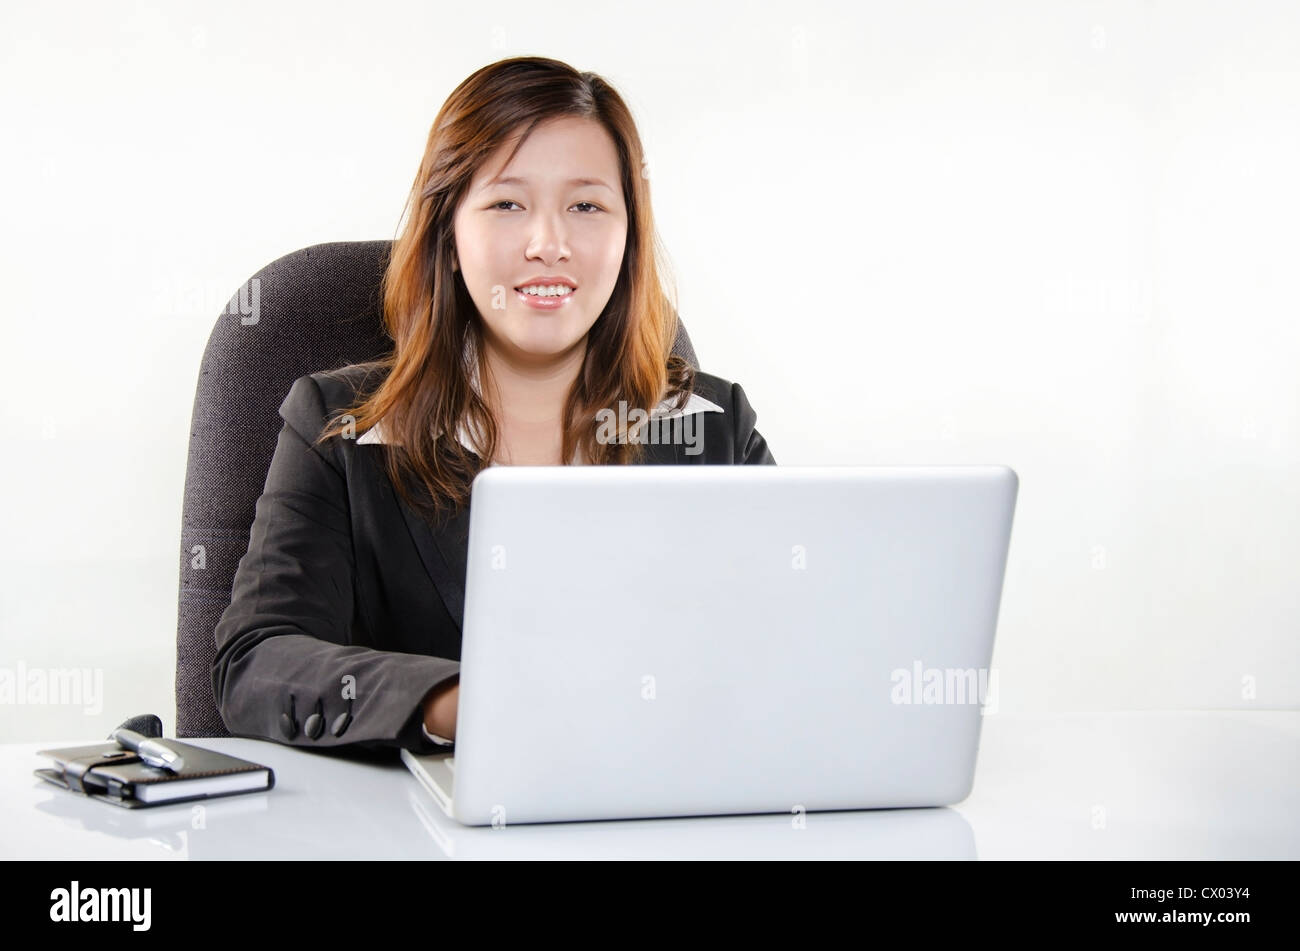 Beautiful businesswoman smiling Photo Stock